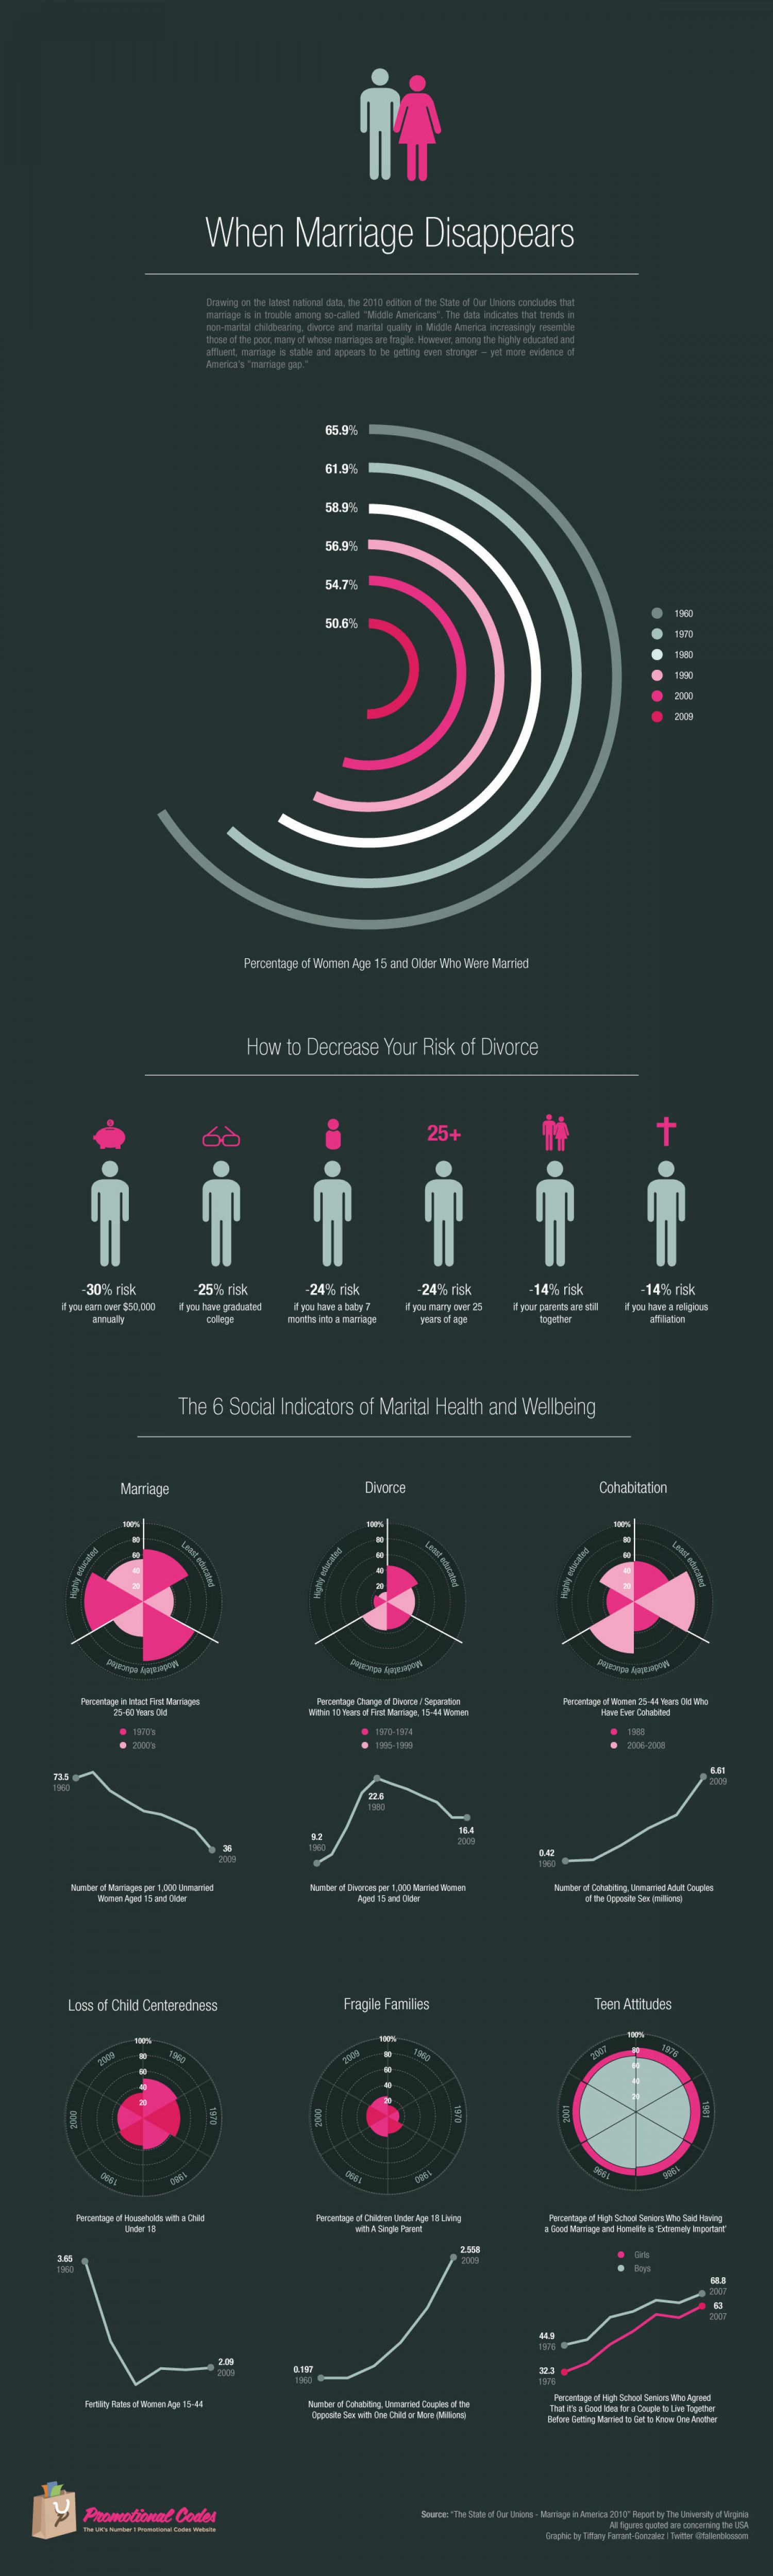 When Marriage Disappears Infographic